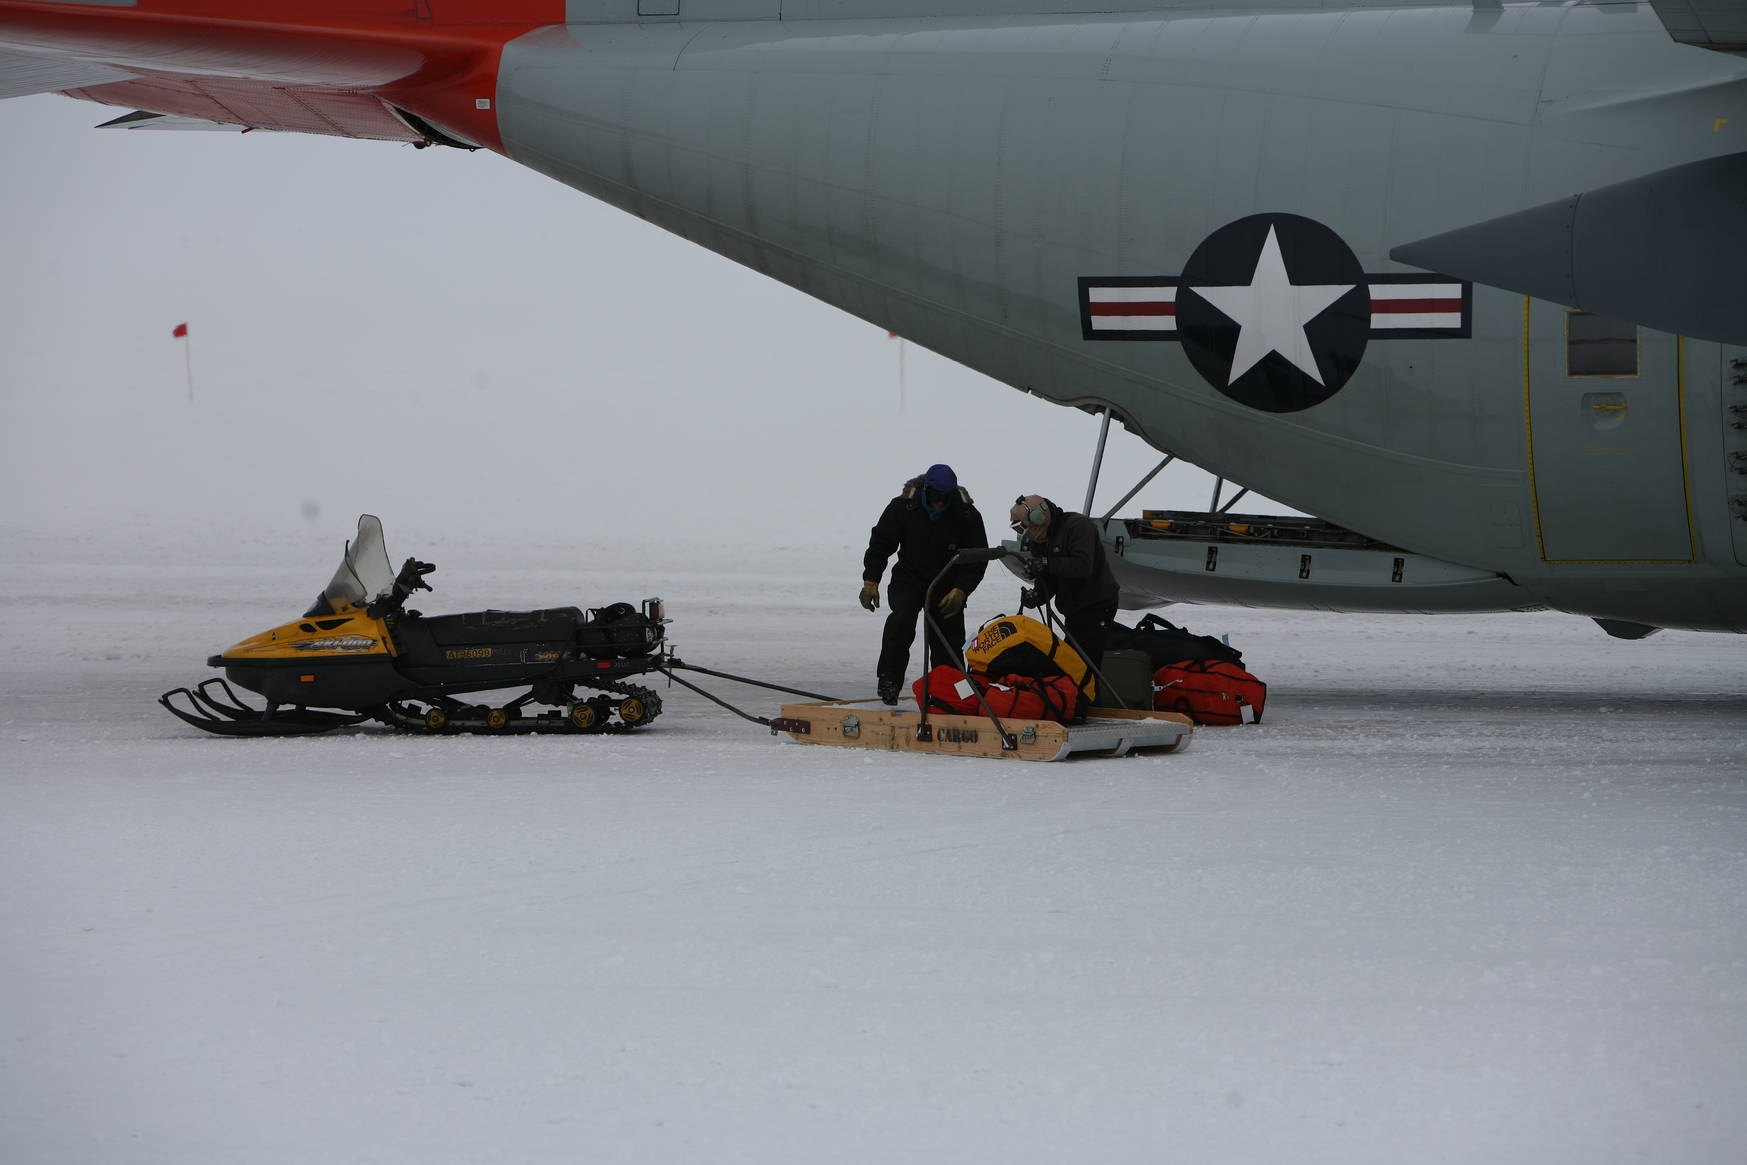 Passenger bags are brought to the aircraft by skimobile.